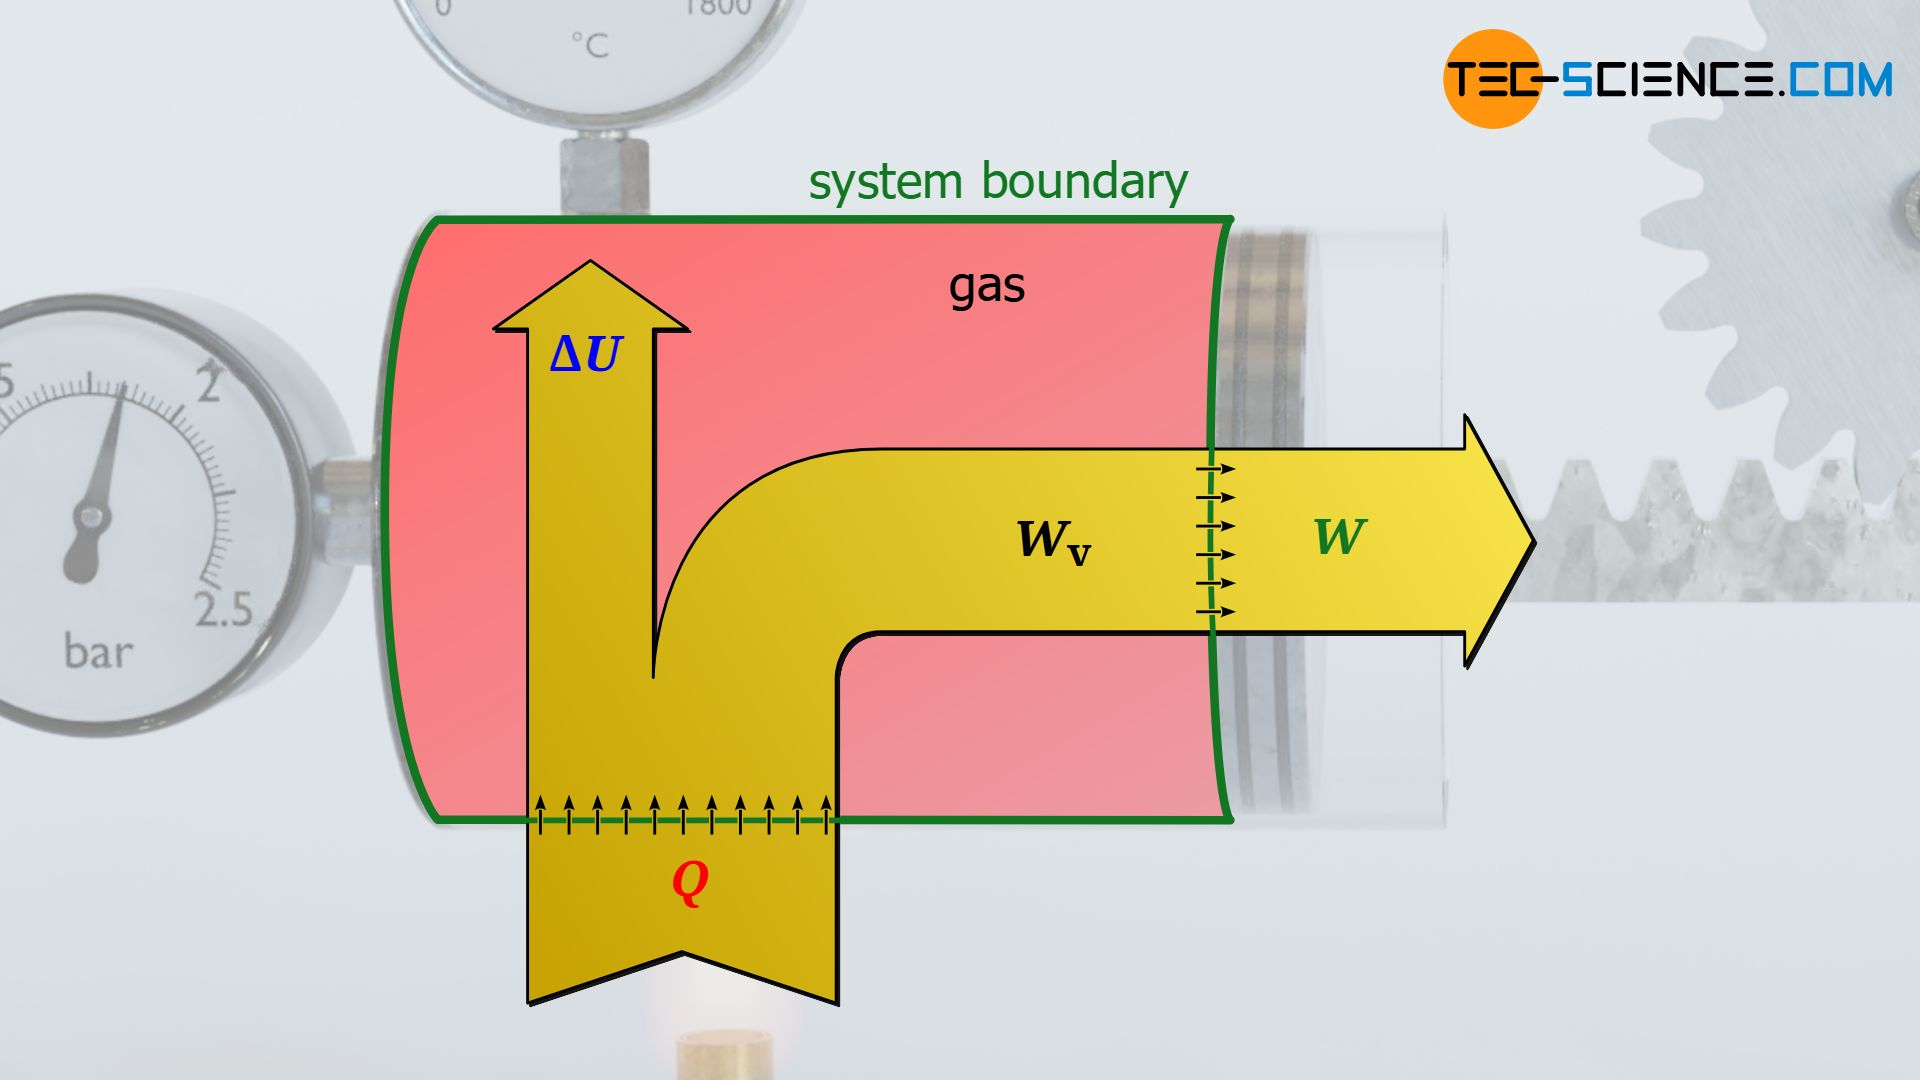 Energy flow diagram (First law of thermodynamics)